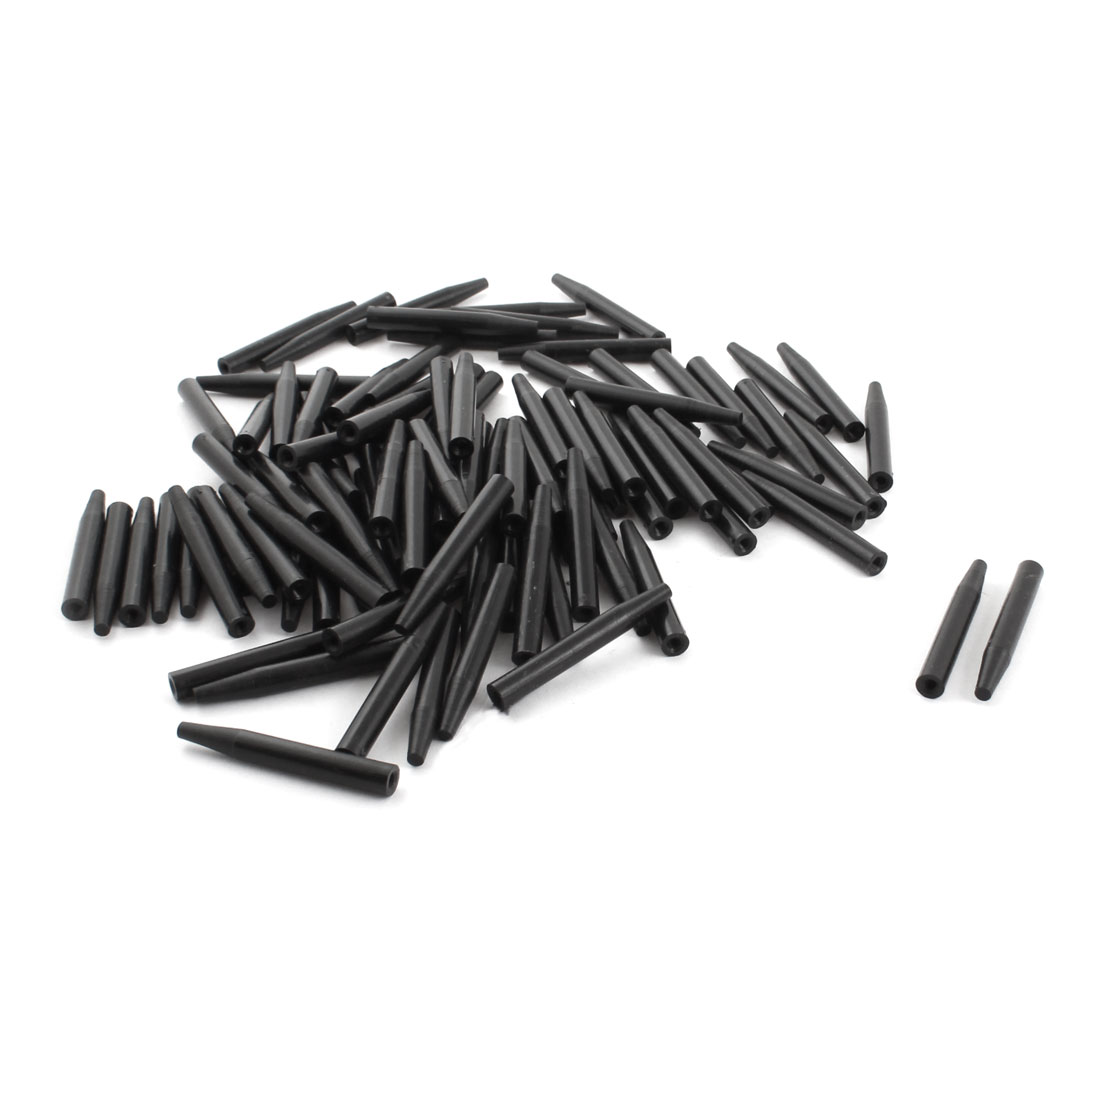 100Pcs 6x45mm PCB Test Fixture Hardware Parts Plate POM Stand Holder Fixed Rod Black